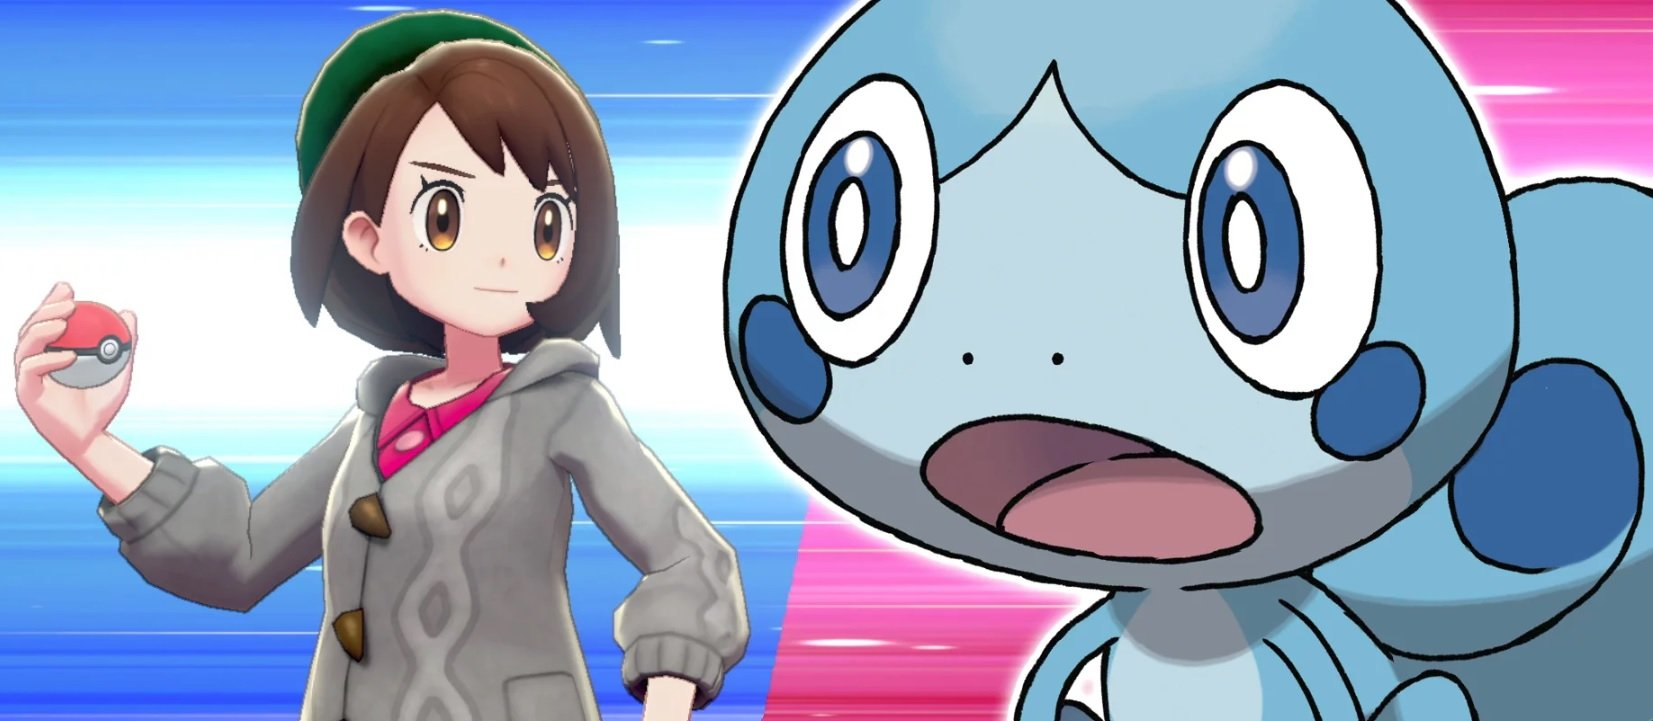 Game Freak is holding a contest to allow someone to name a